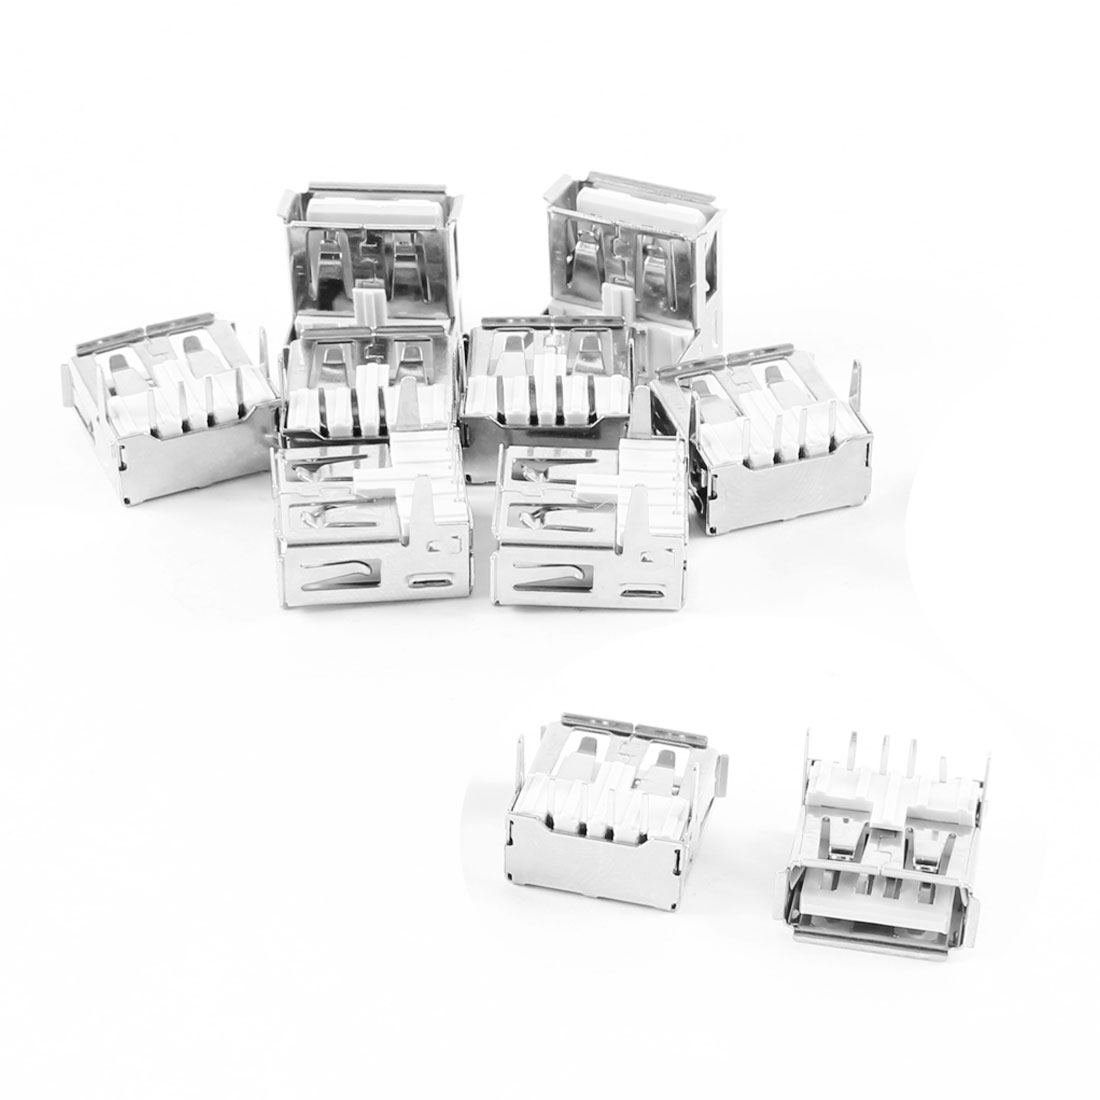 10 Pcs USB 2.0 A Female Right Angle Mount PCB Port Jack Connector